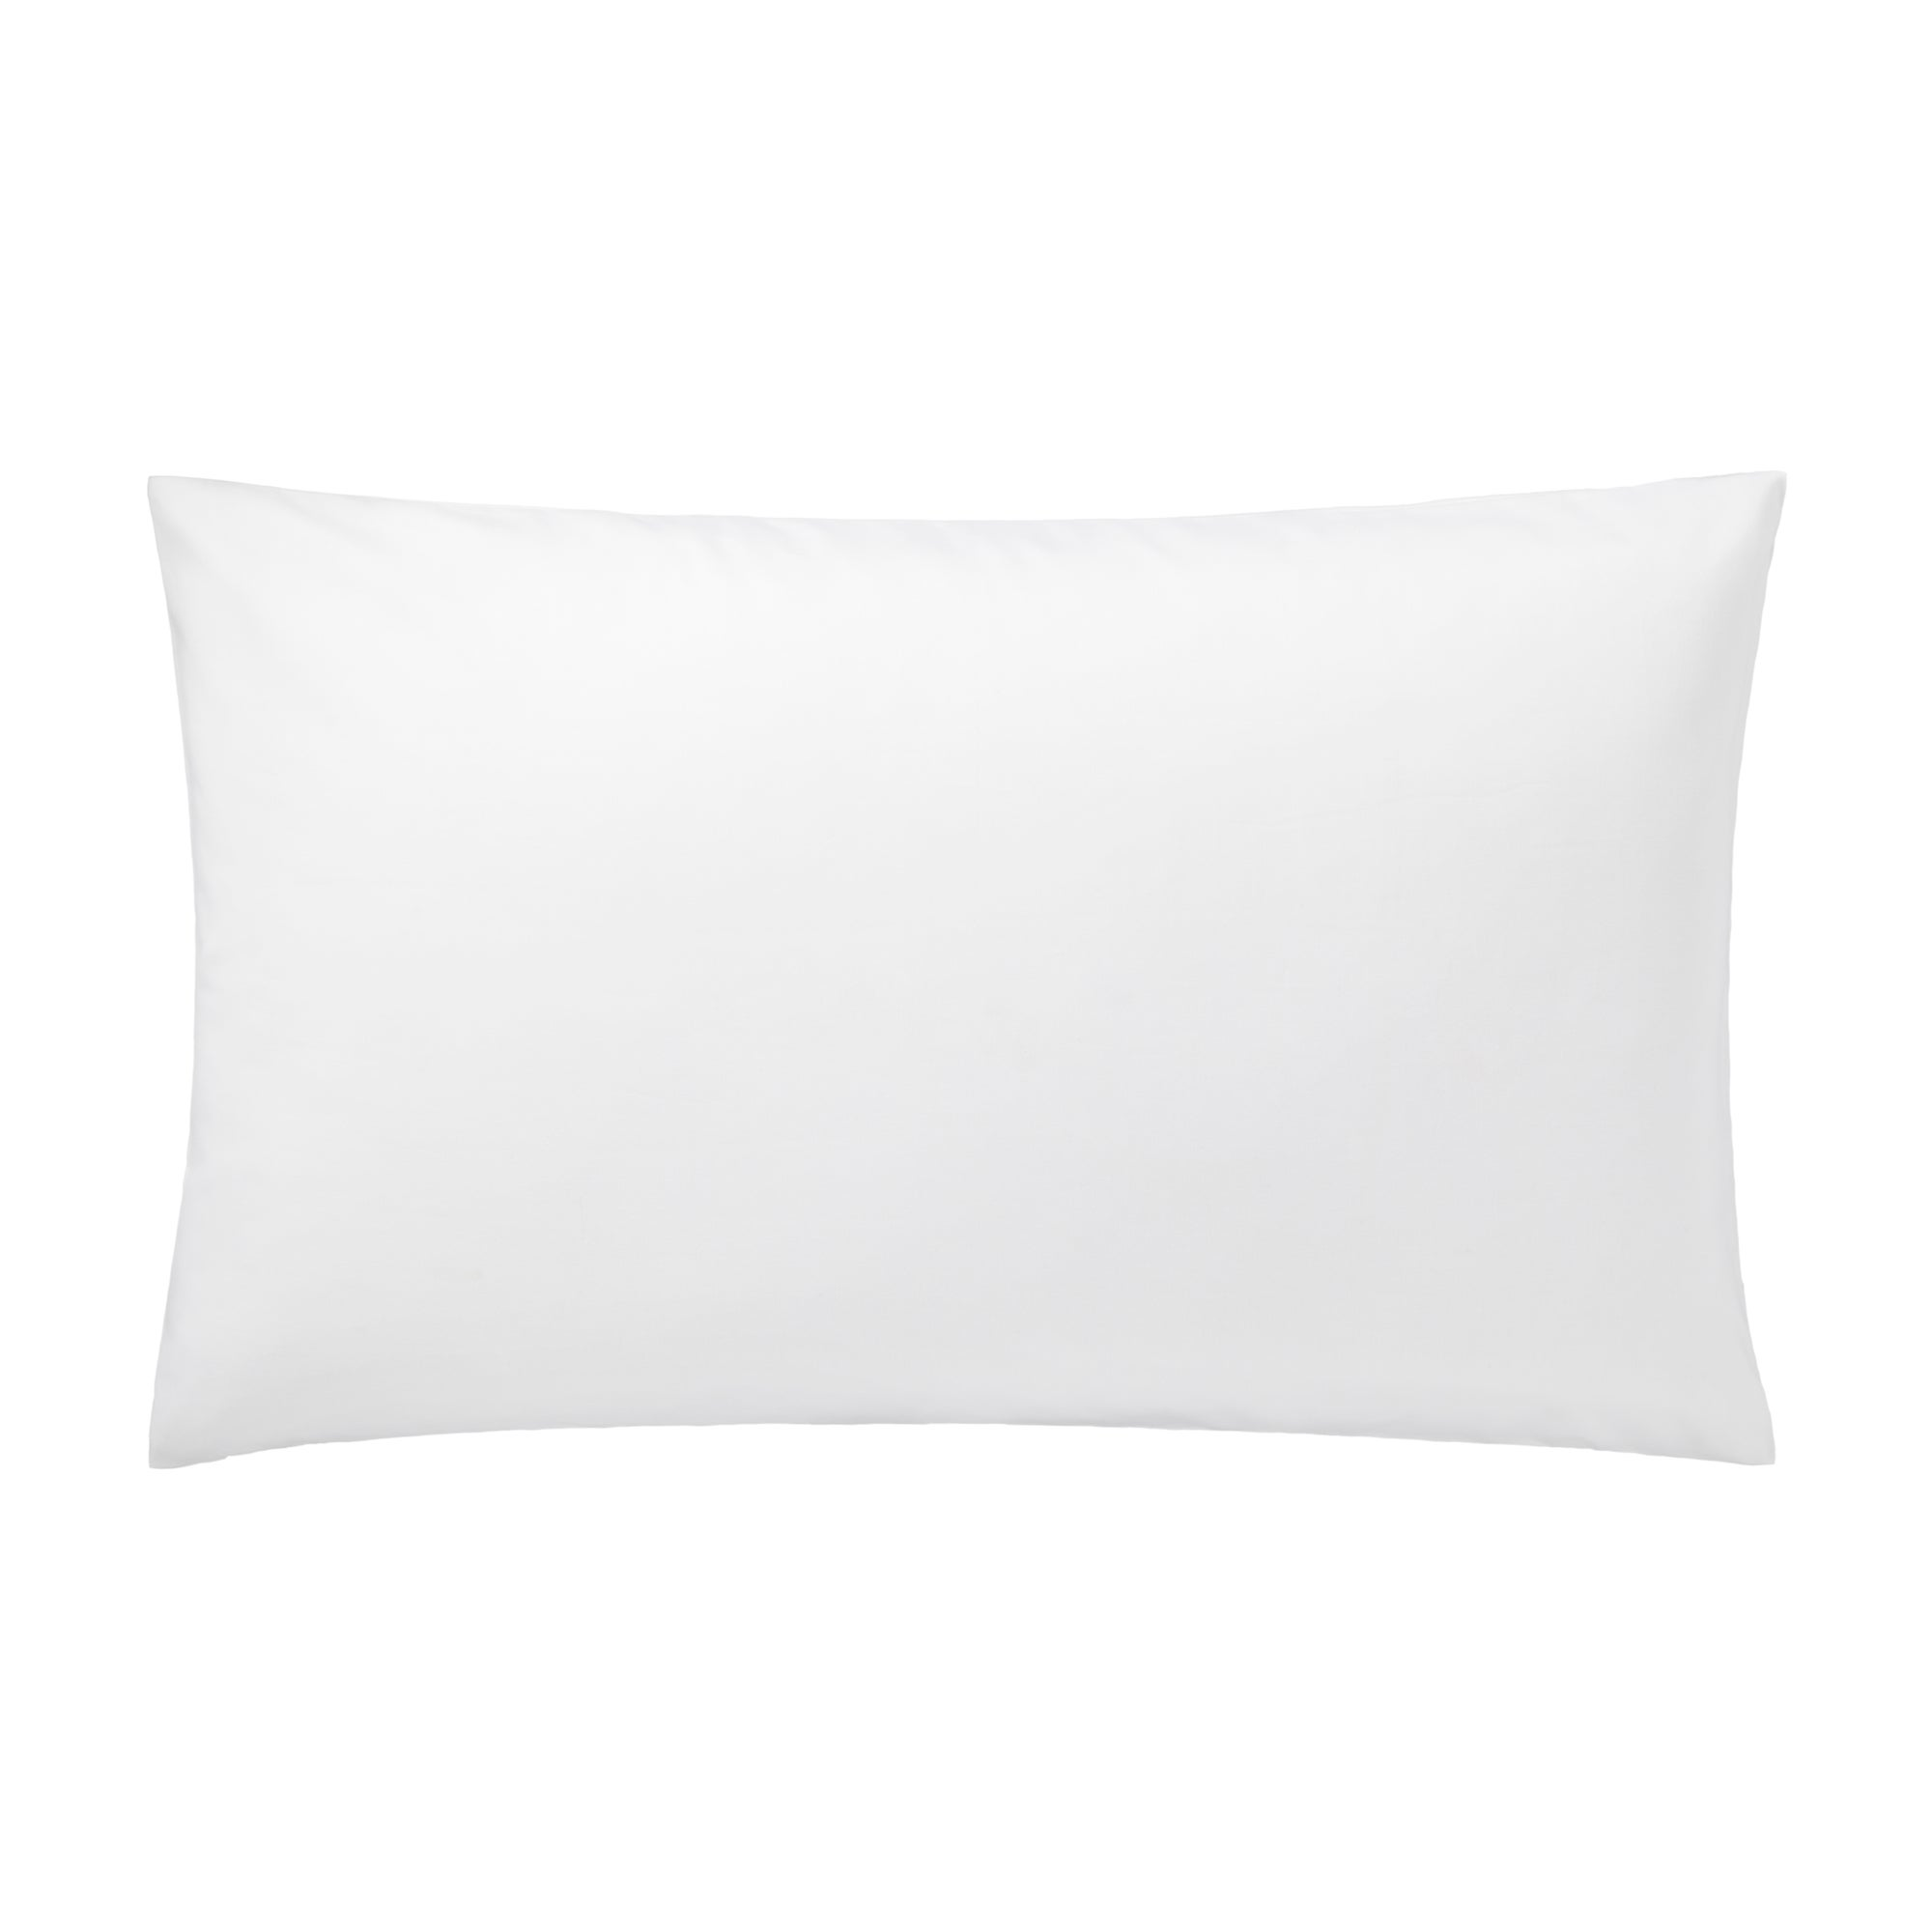 White Hotel Plain 300 Thread Count Collection Housewife Pillowcase